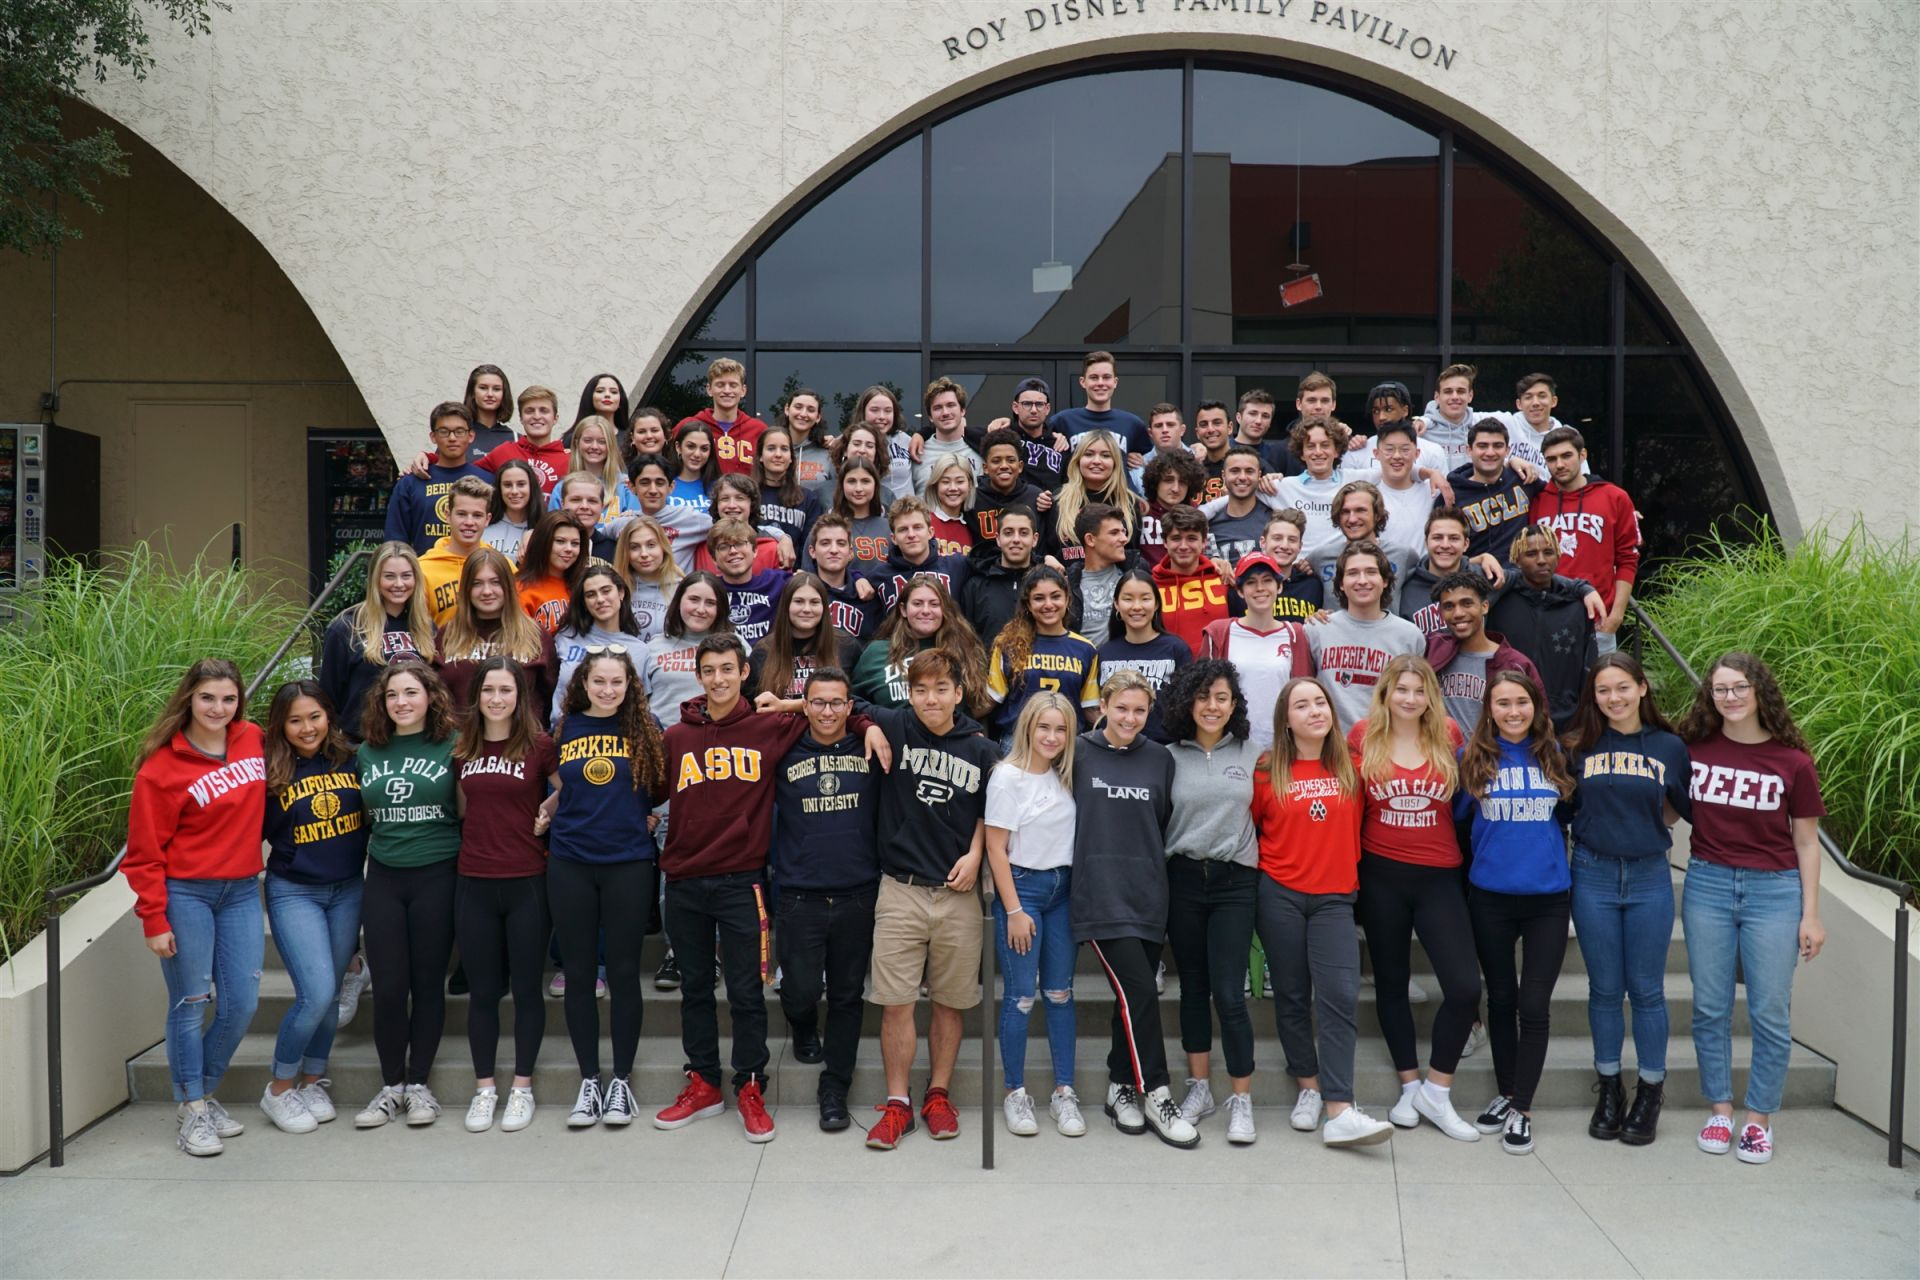 The Class of 2018 in their college T-shirts